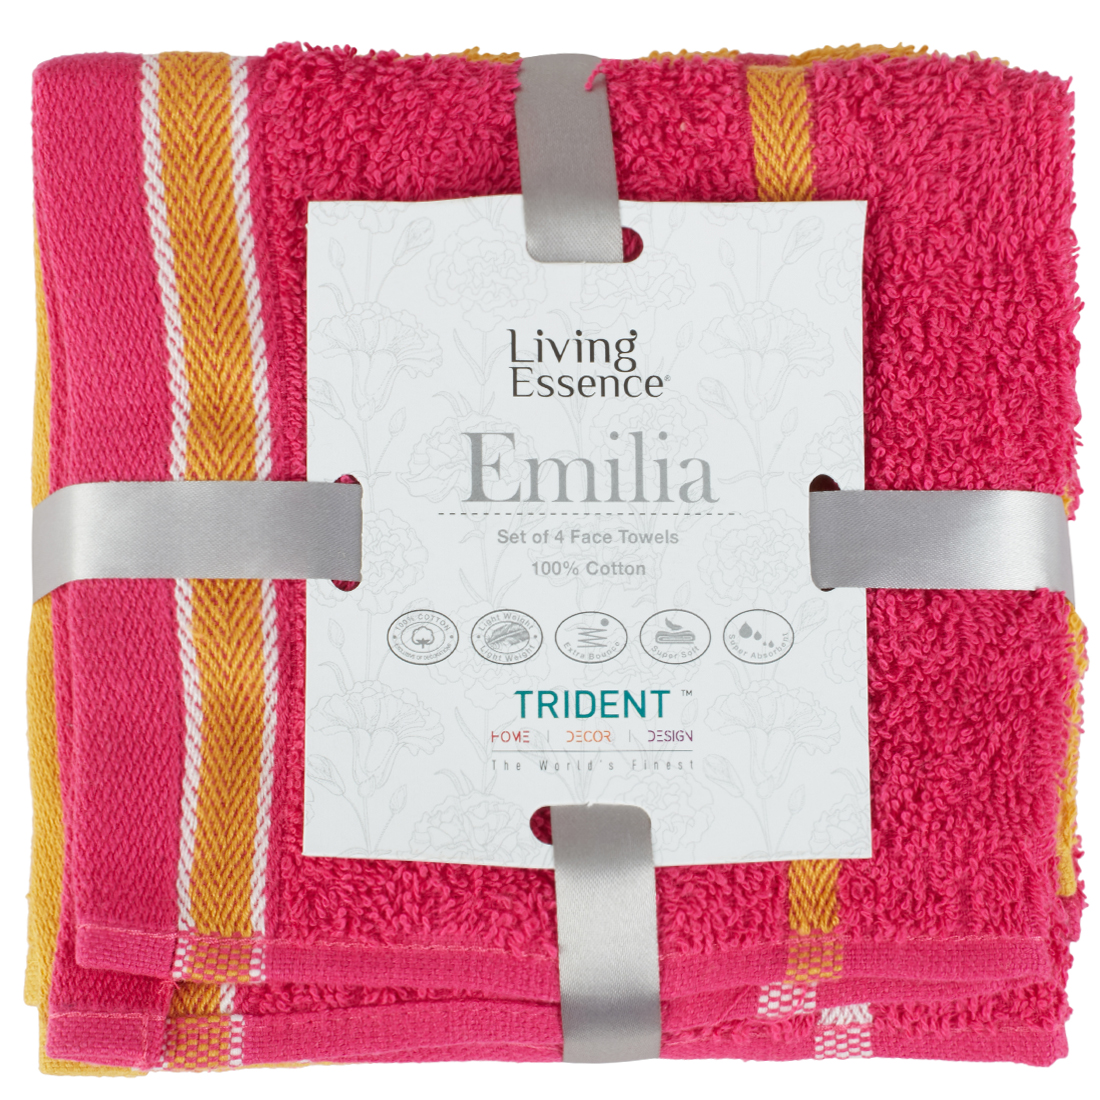 Emilia Set of 4 Cotton Face Towels in Gold Pink Colour by Living Essence